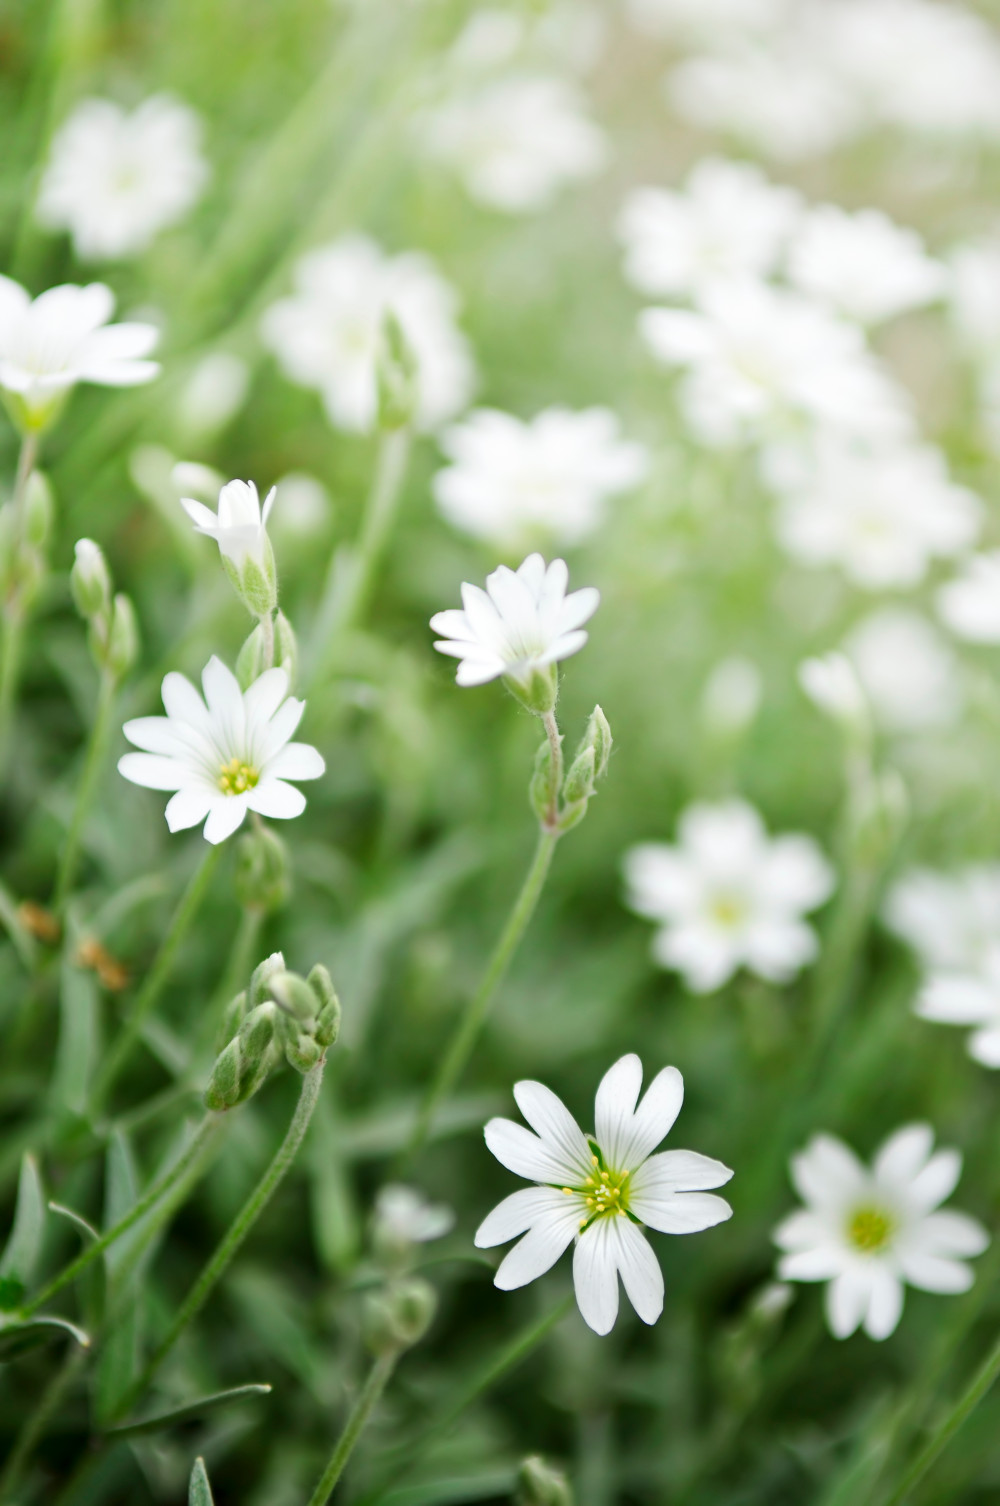 Weeds greenthumb lawn treatment service common mouse ear chickweed dhlflorist Image collections